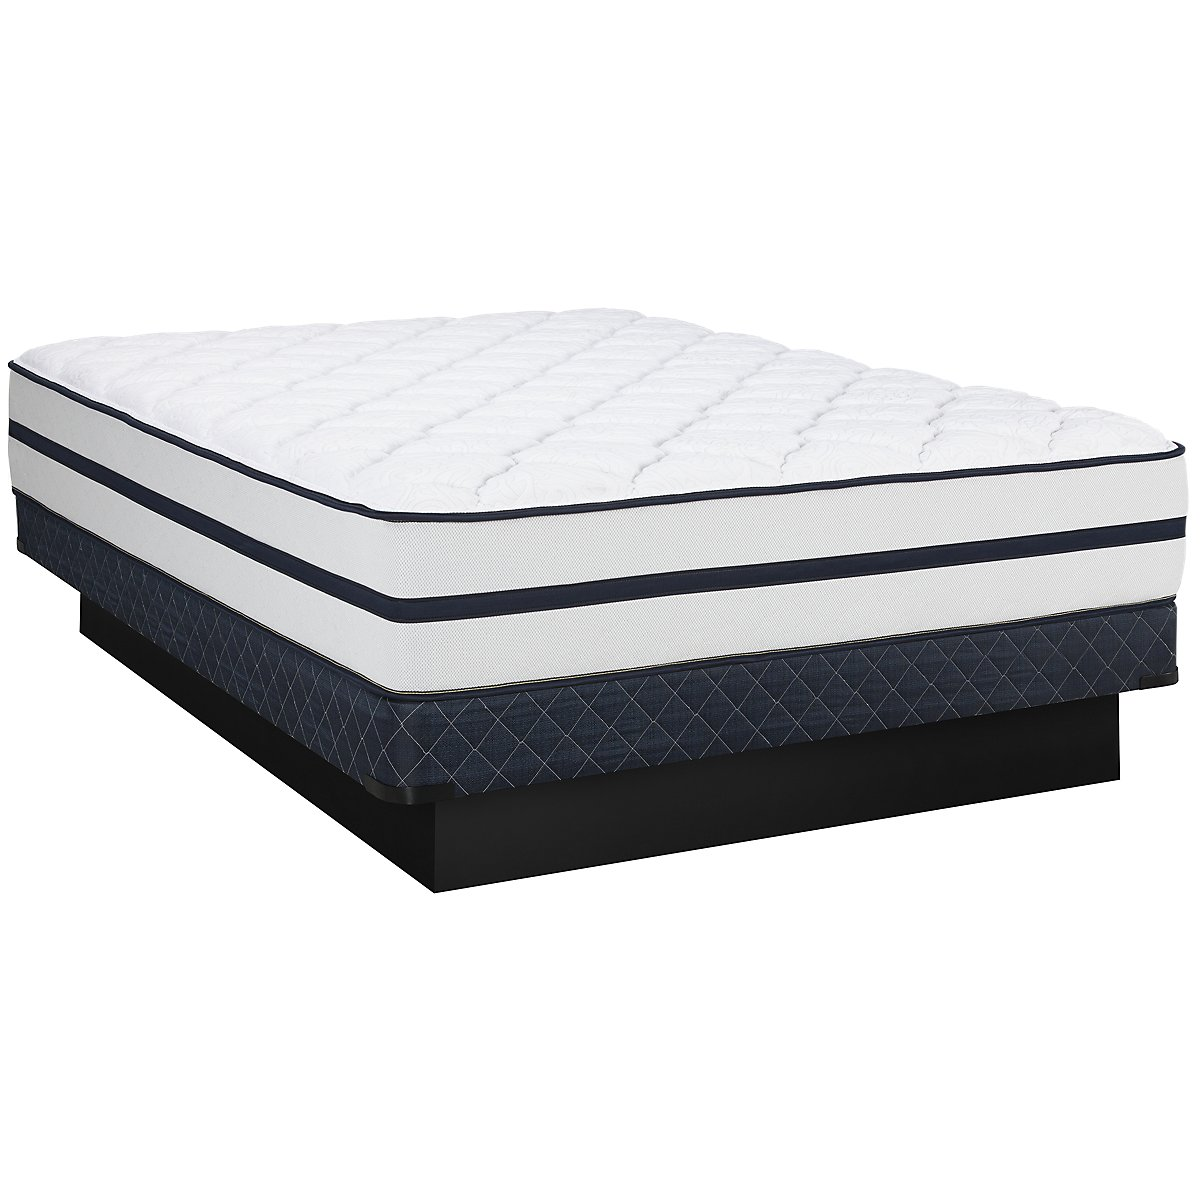 Kevin Charles Marina Luxury Firm Innerspring Low-Profile Mattress Set